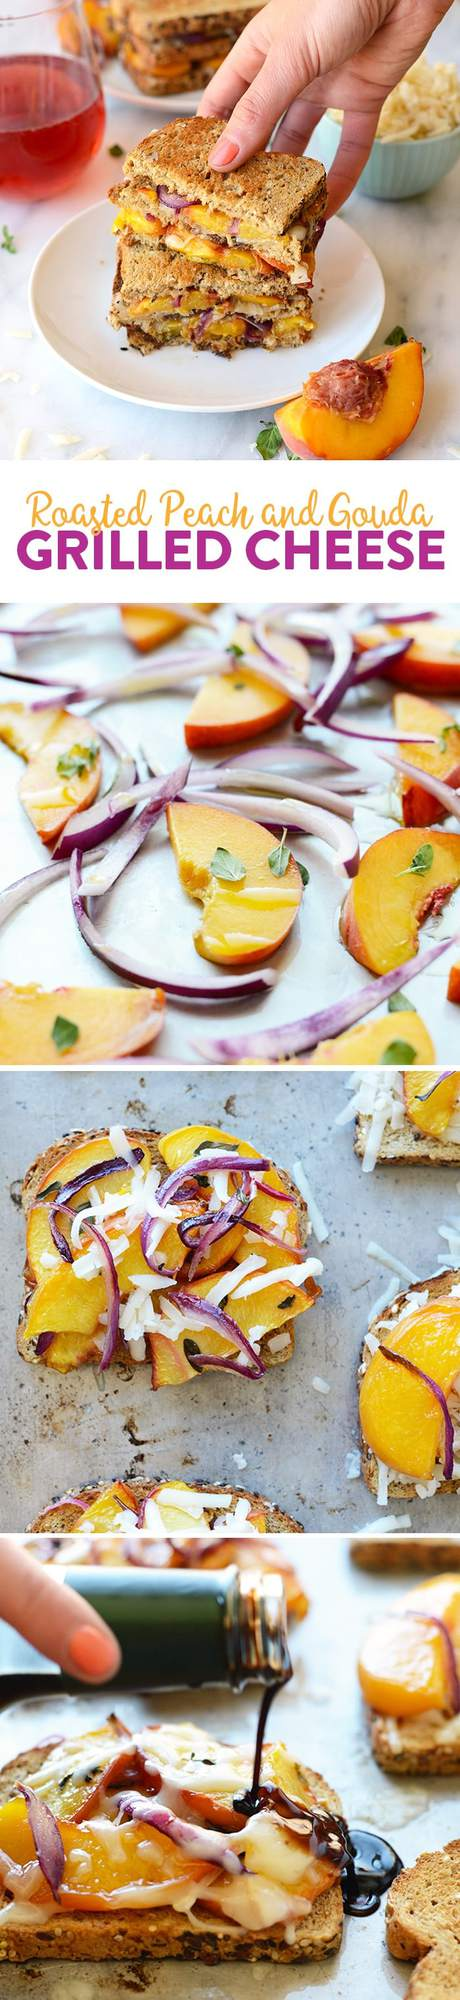 Get fancy with your grilled cheese and add some delicious roasted peaches with gouda cheese and a drizzle of aged balsamic in between some seedy bread!